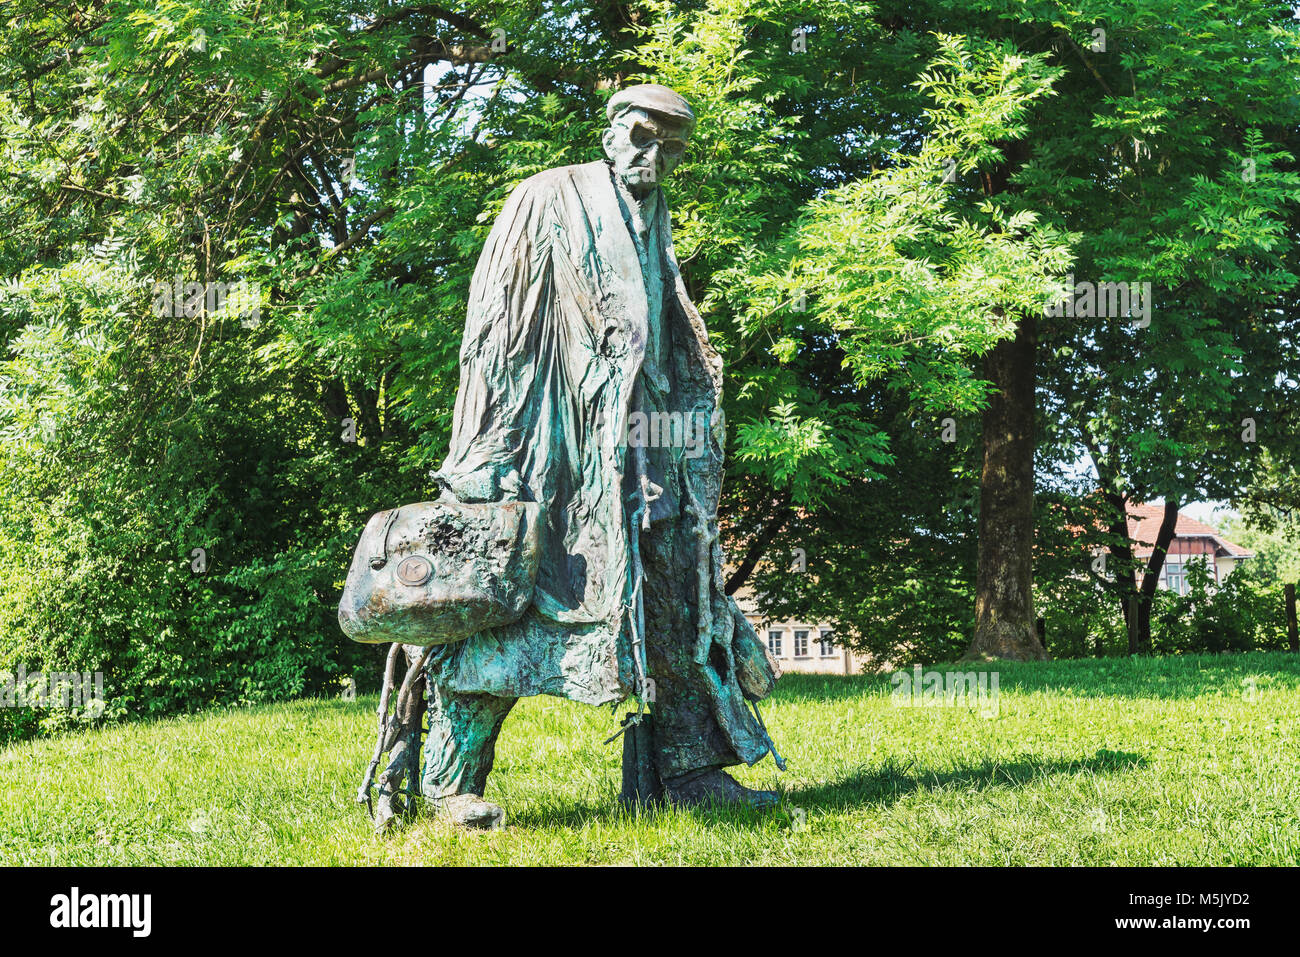 The bronze statue of a tall man with a bag, glasses and cap is located in the Tivoli Park Ljubljana, Slovenia, Europe - Stock Image